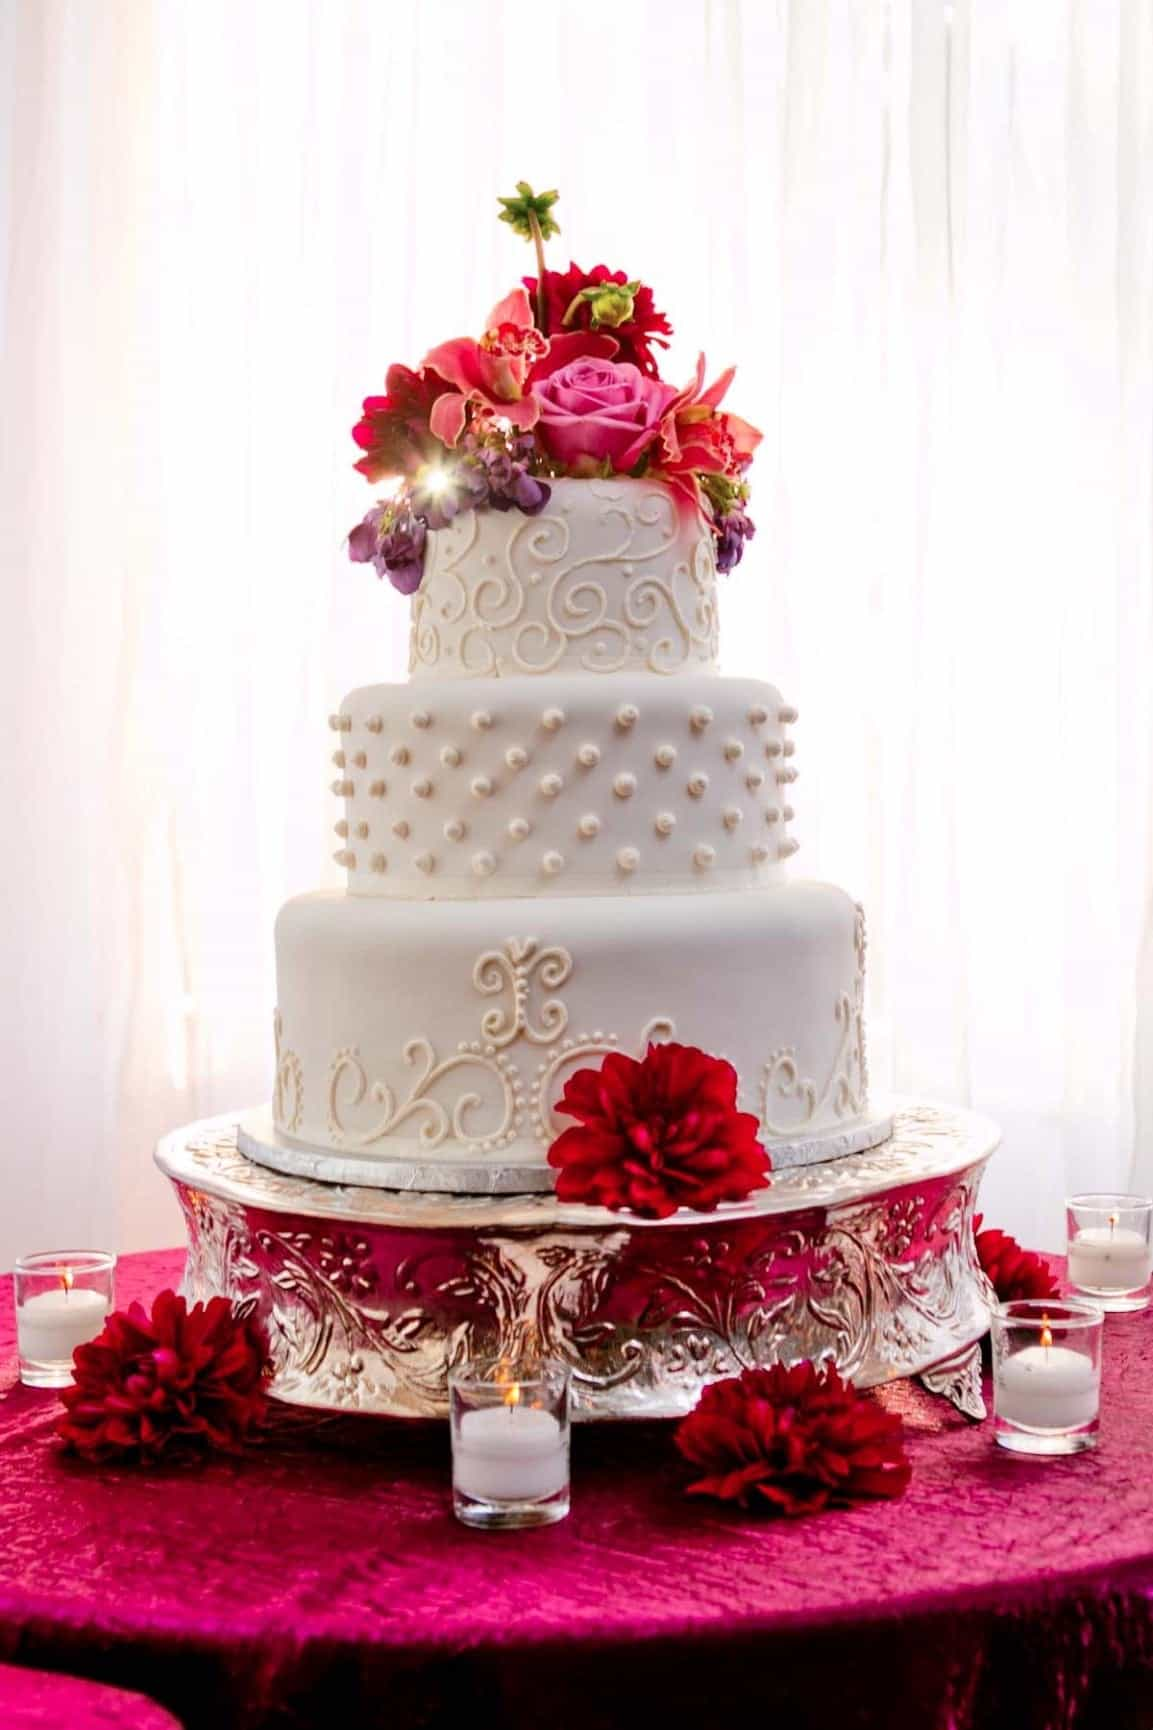 Romantic Wedding Cake With Classic Red Rose (Image 15 of 16)